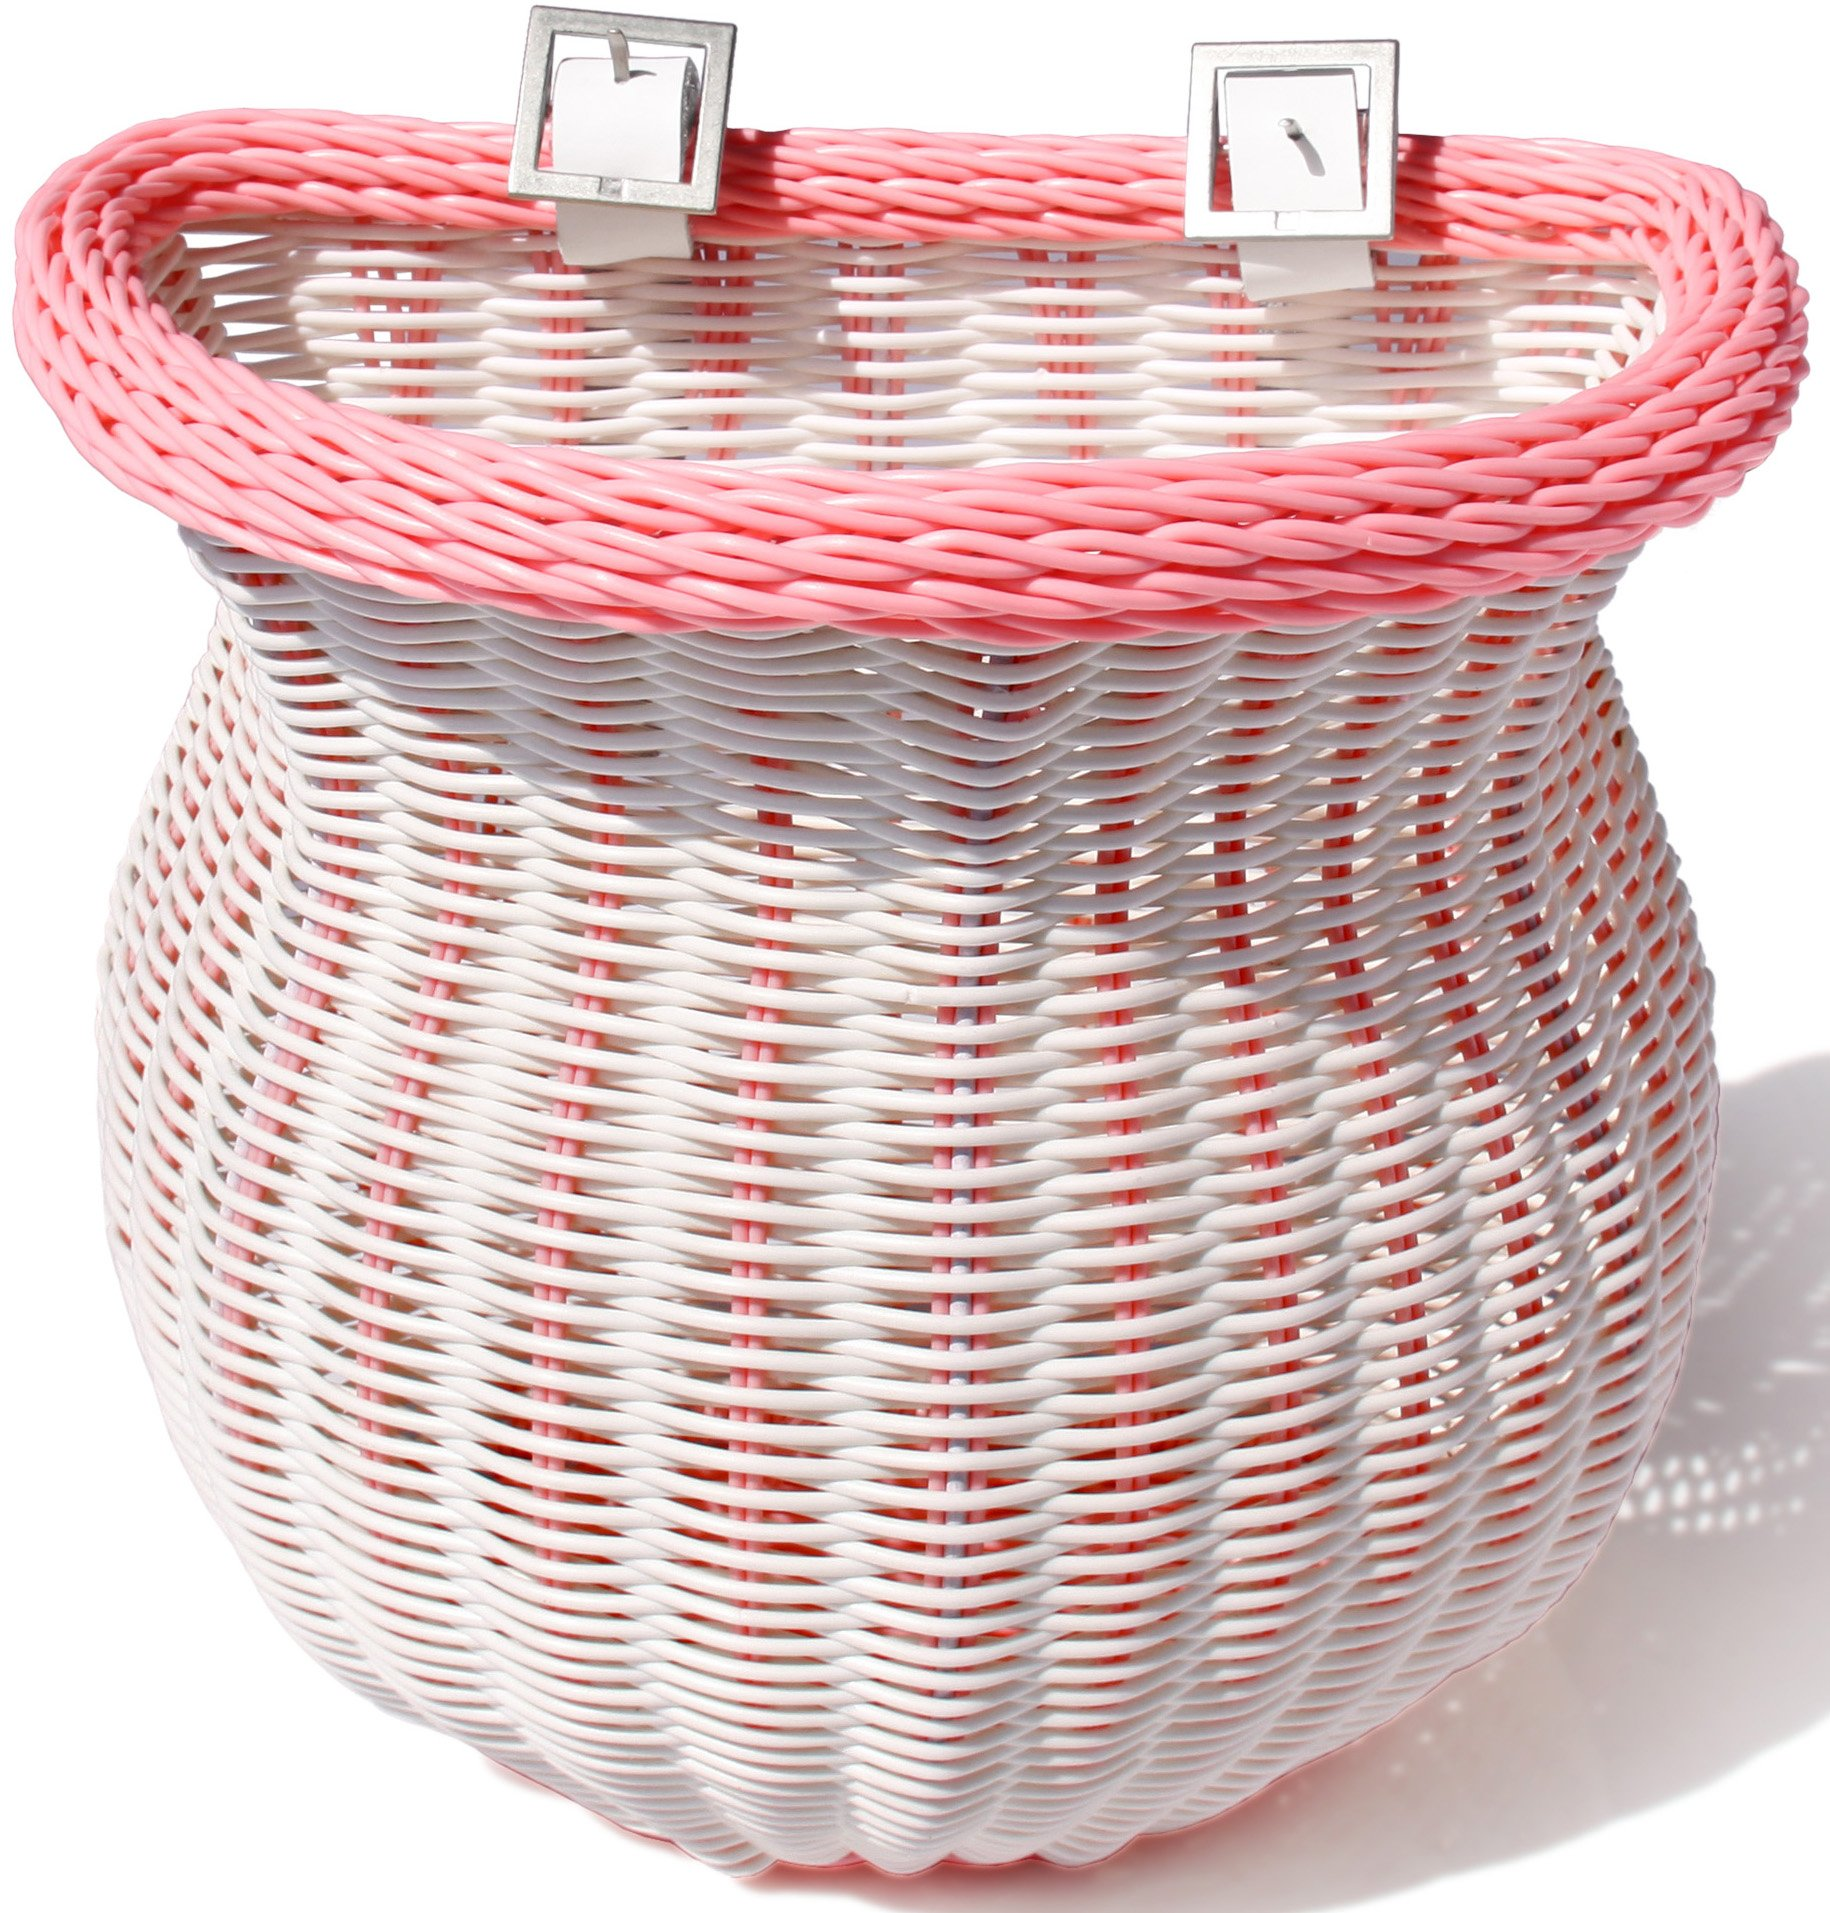 Colorbasket 01365 Front Handle Bar Adult Bike Basket, Water Resistant, Leather Straps, White with Pink Trim